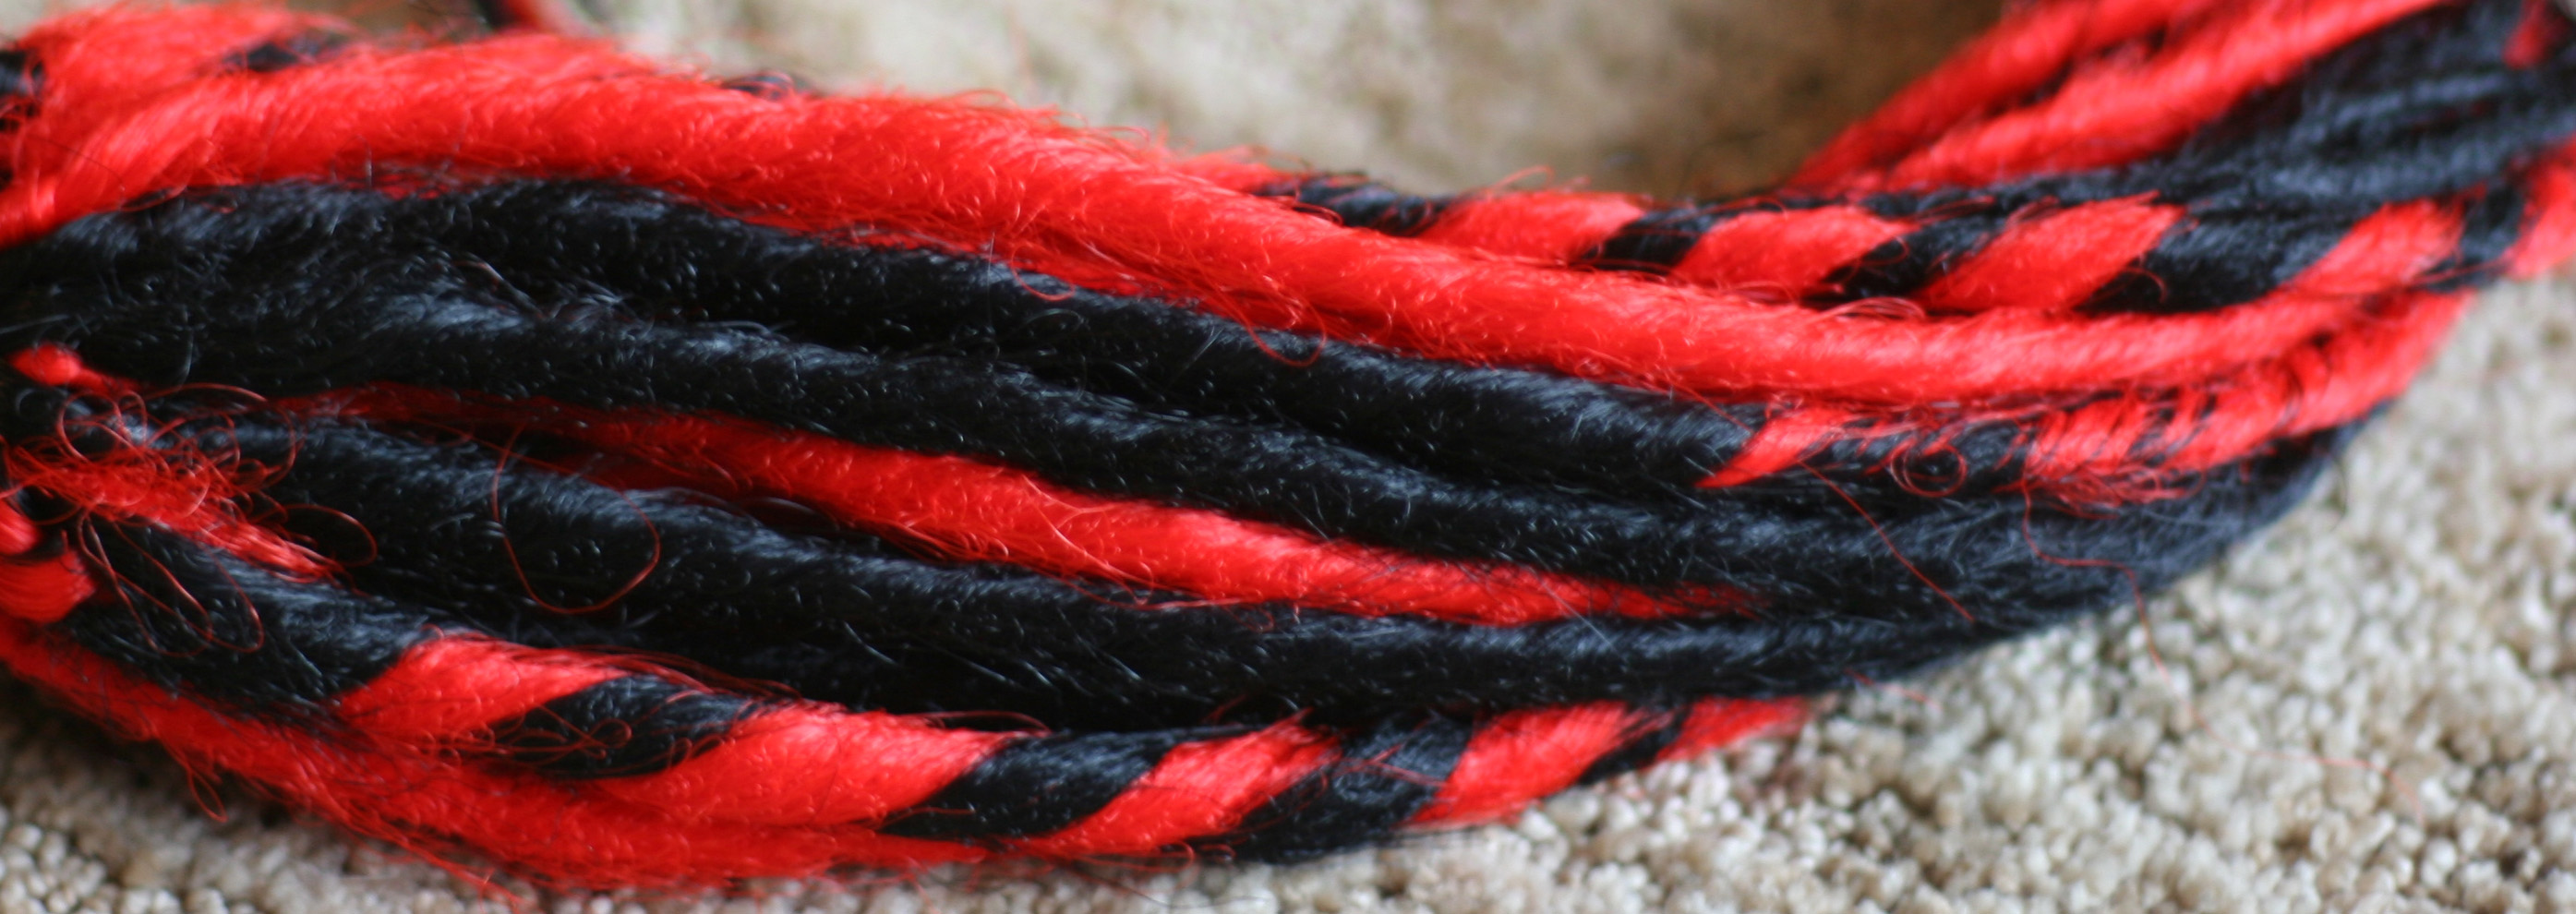 DIY Synthetic Dreads: Candy Cane/Swirled